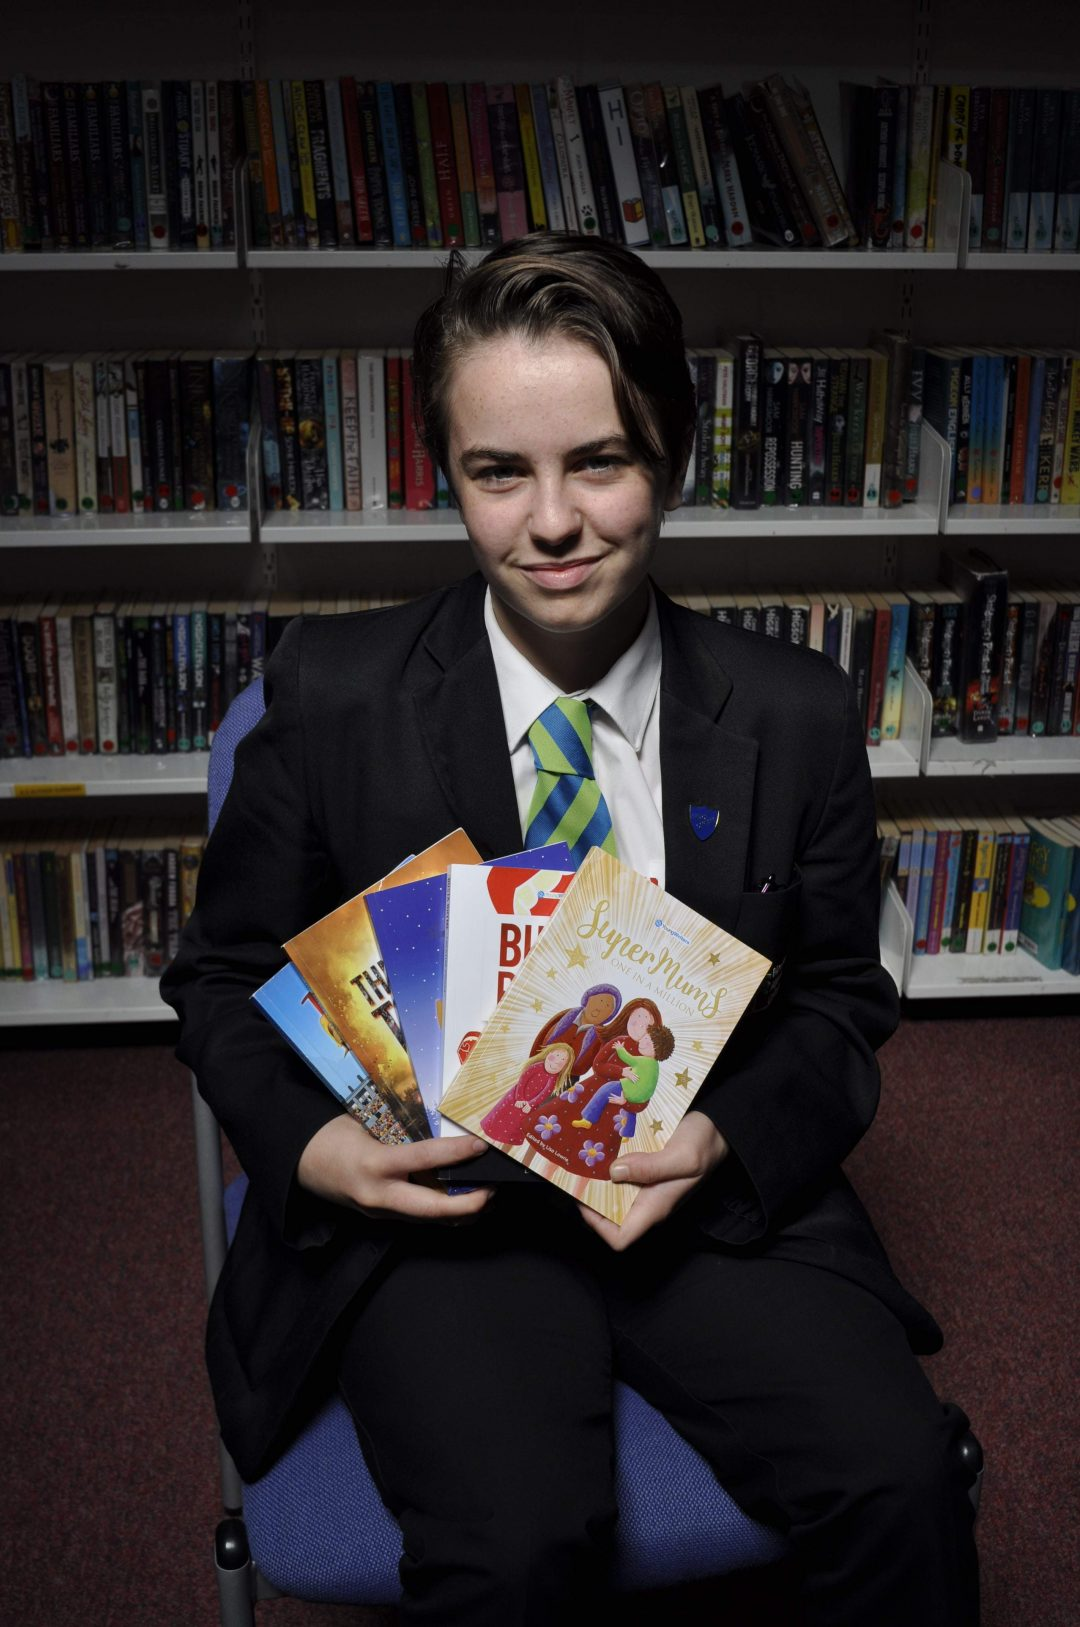 Year 11 Prefect and published poet, Willow Bryant